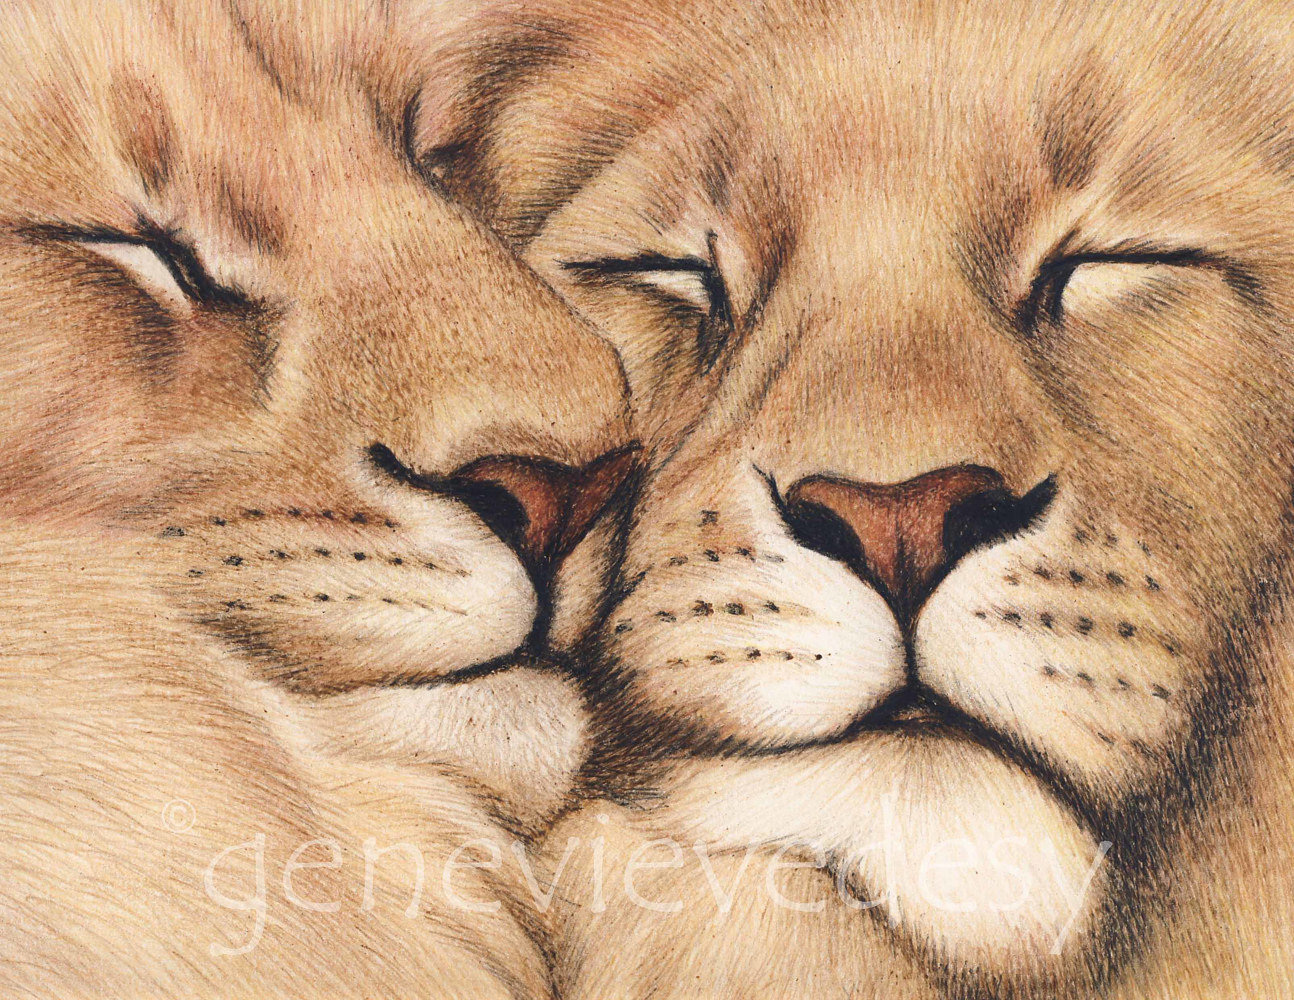 Lions en amour, 2013 by Genevieve Desy